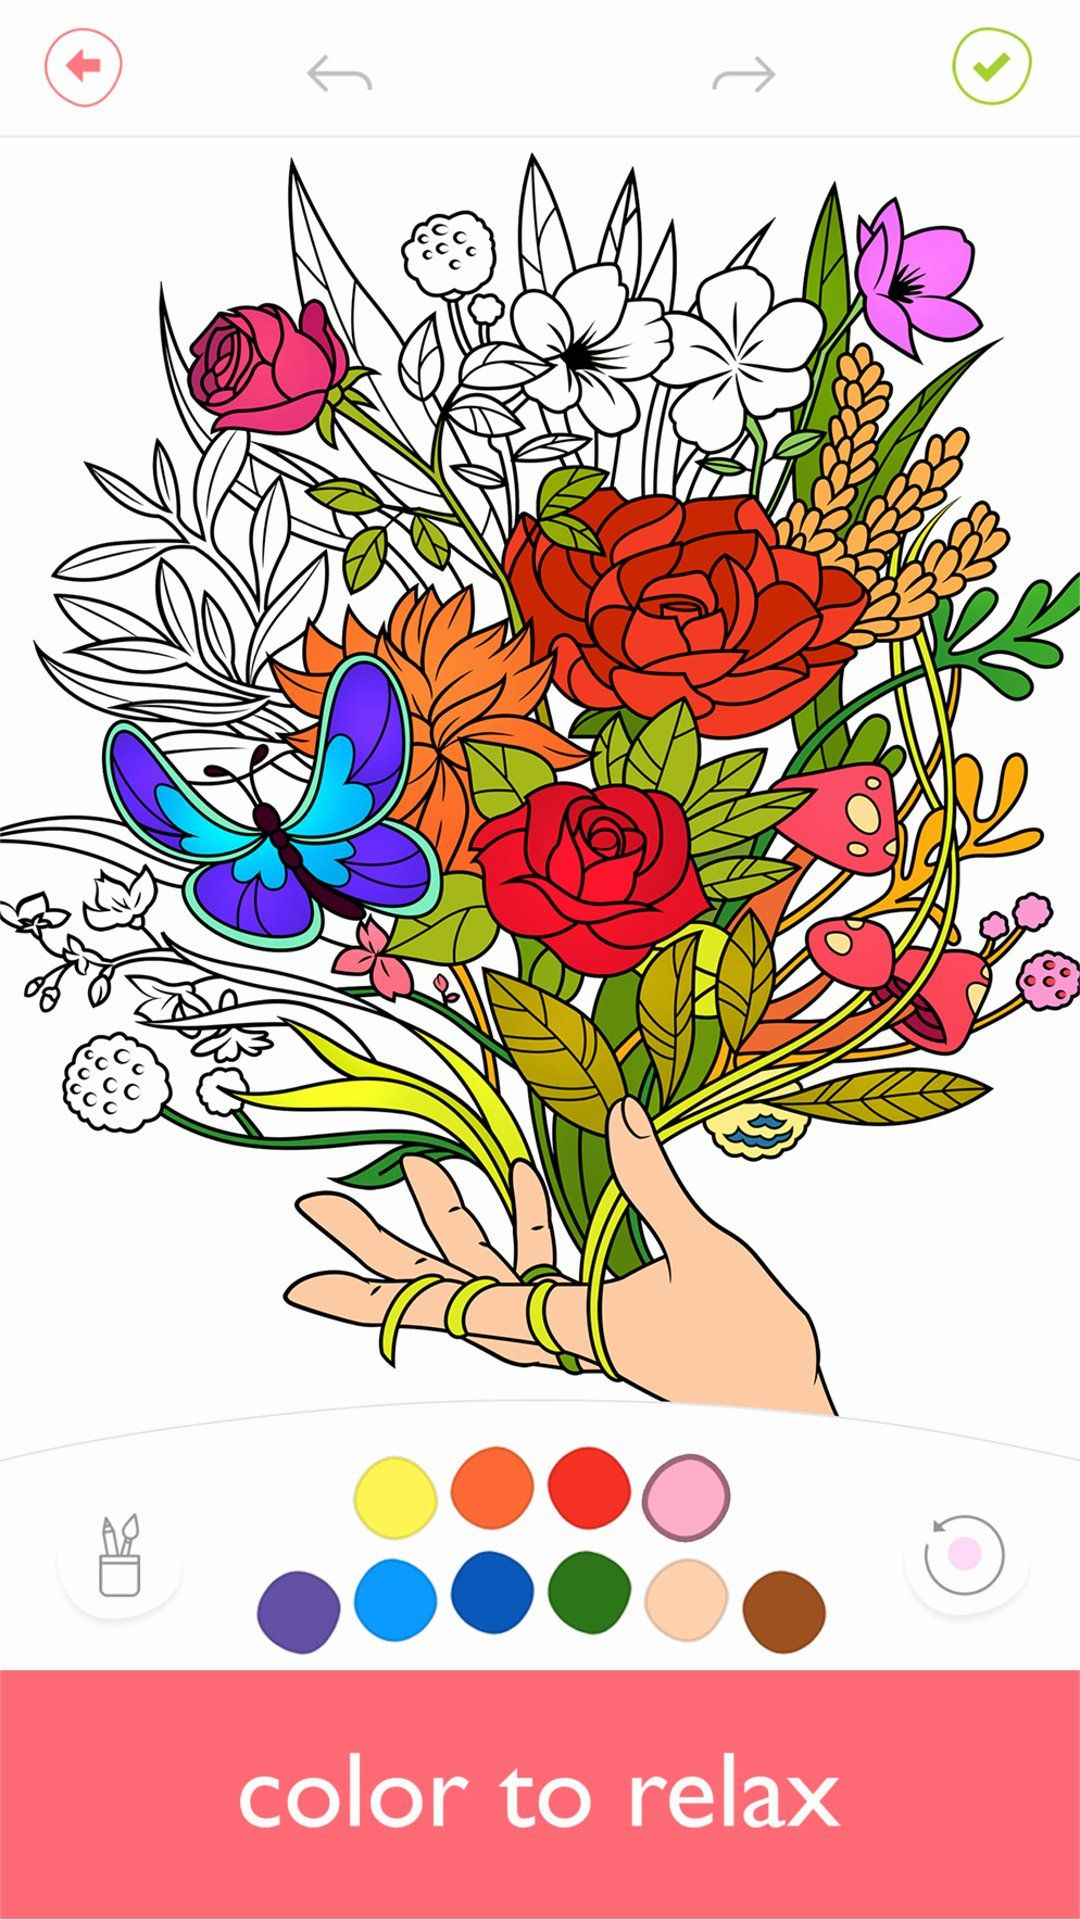 Free Coloring Games Online Beautiful Colorfy Free Colouring Book For Adults Best Colouring In 2020 Coloring Book App Coloring Books Cartoon Coloring Pages